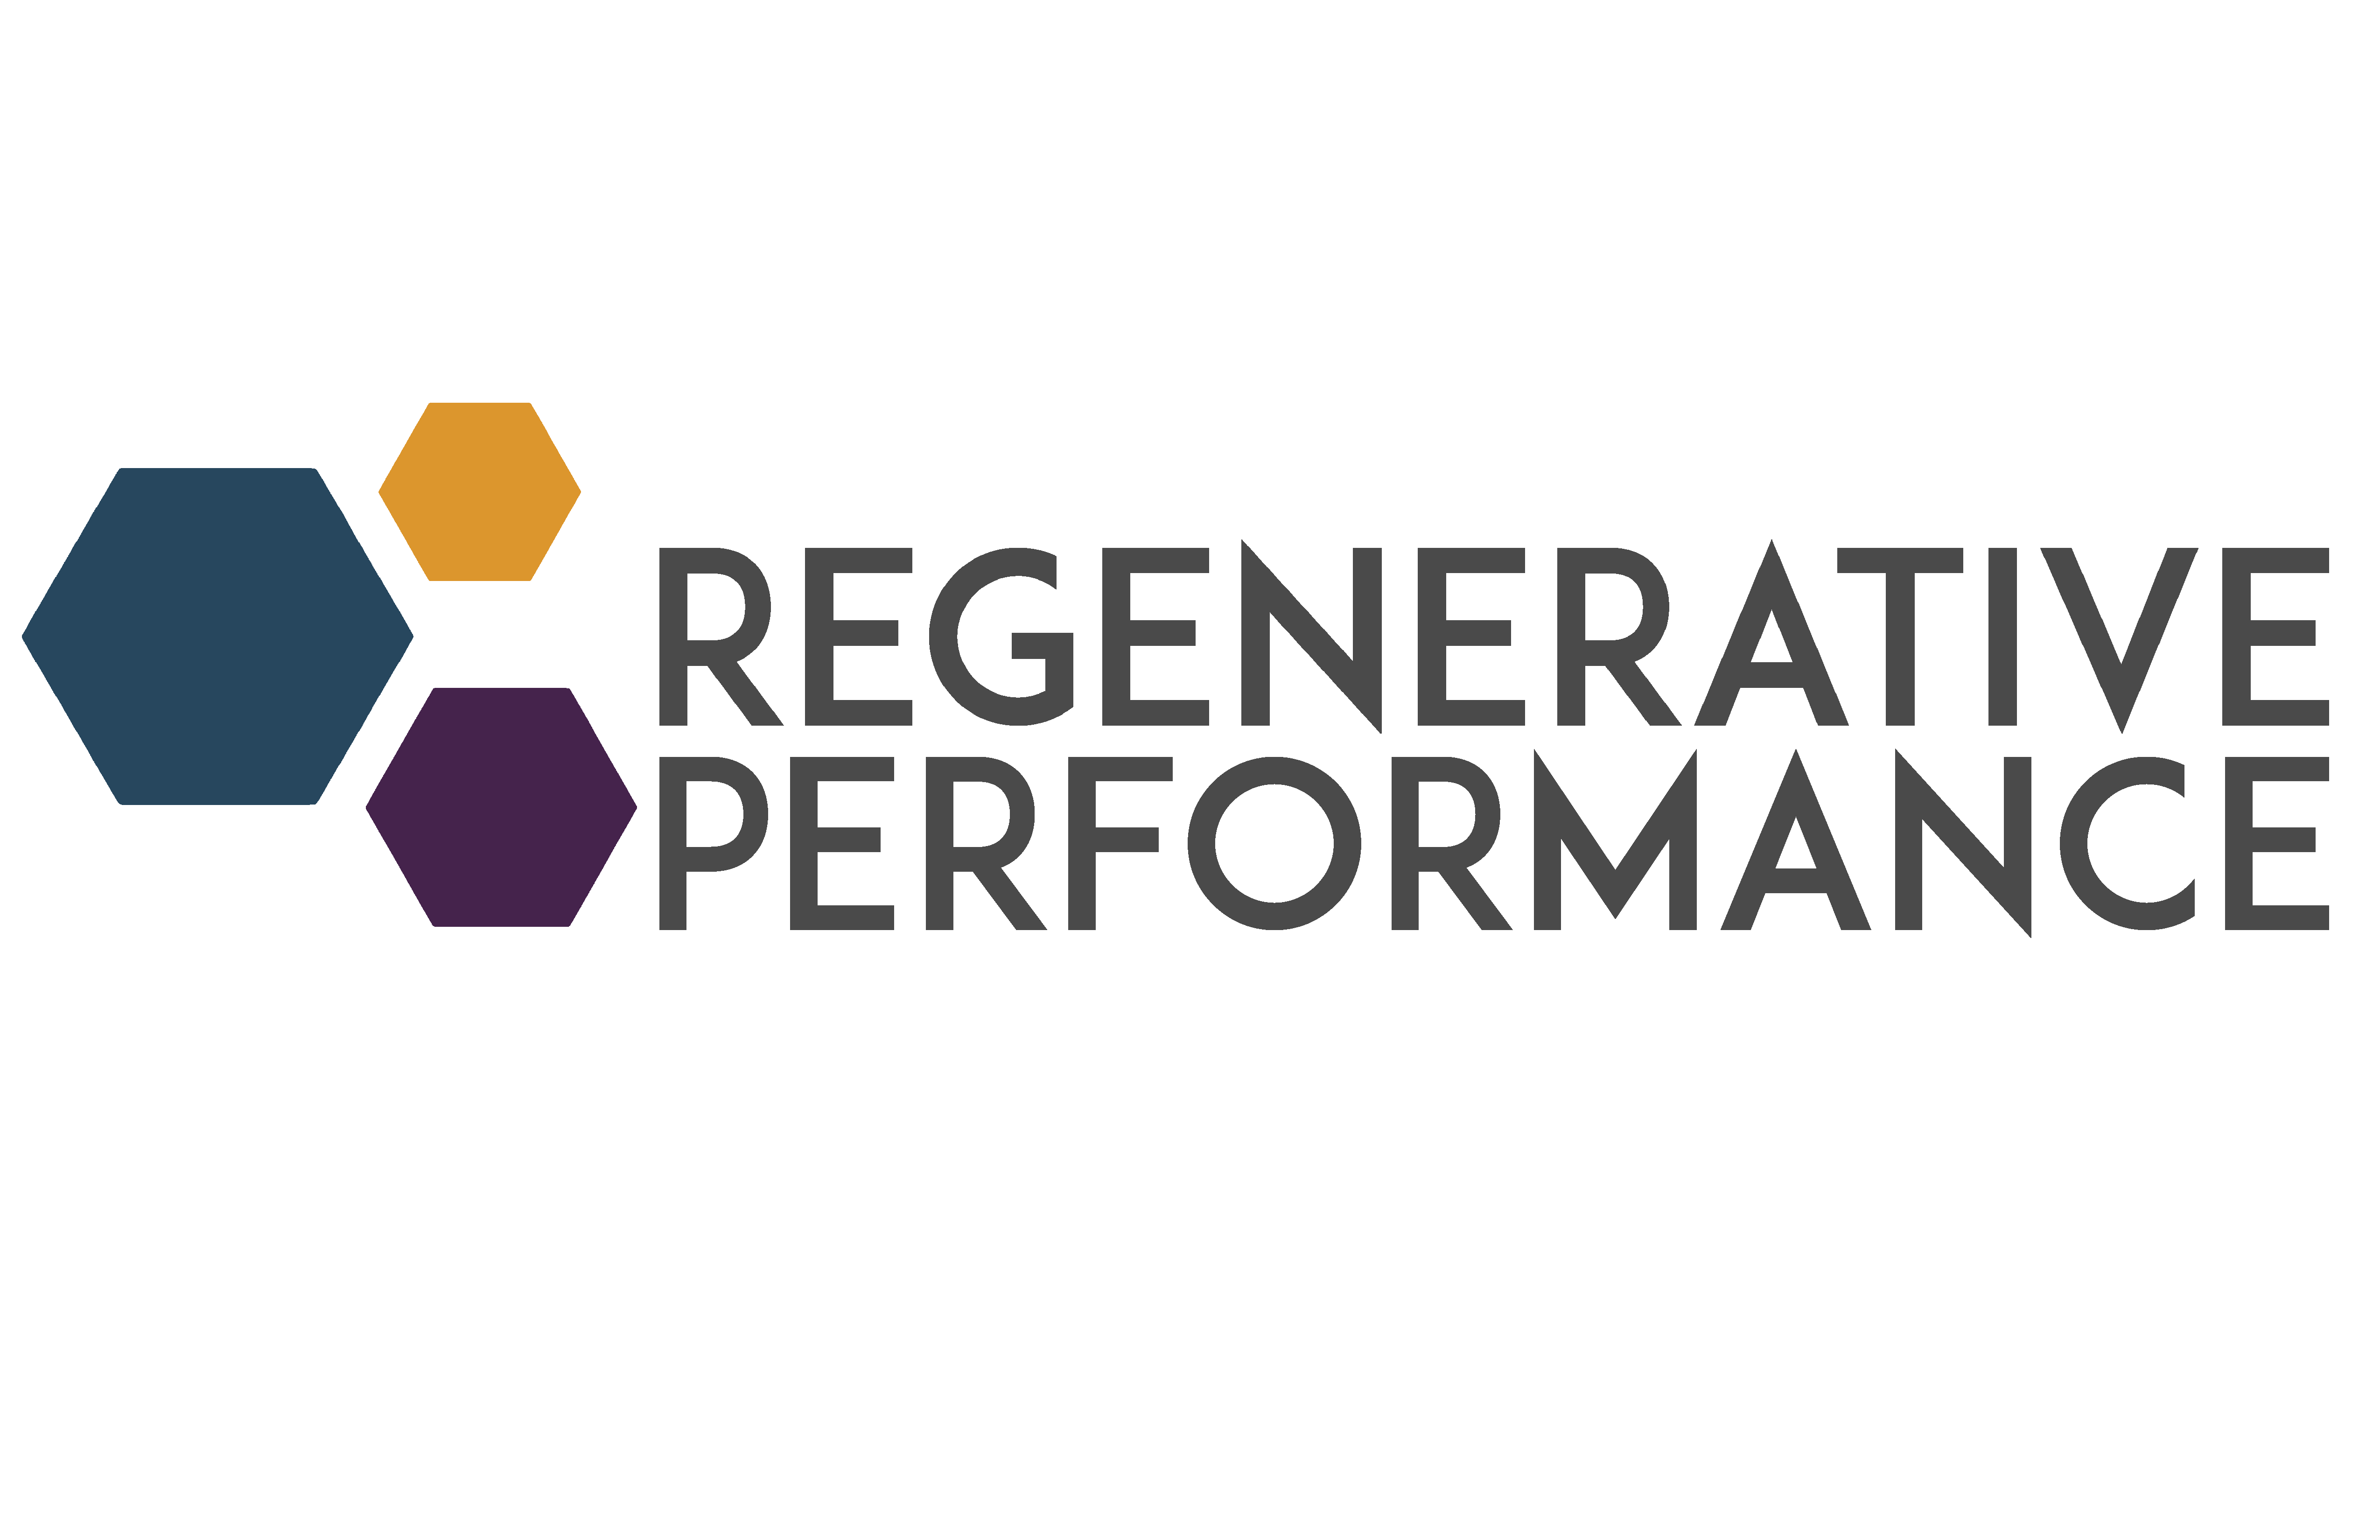 Regenerative Performance